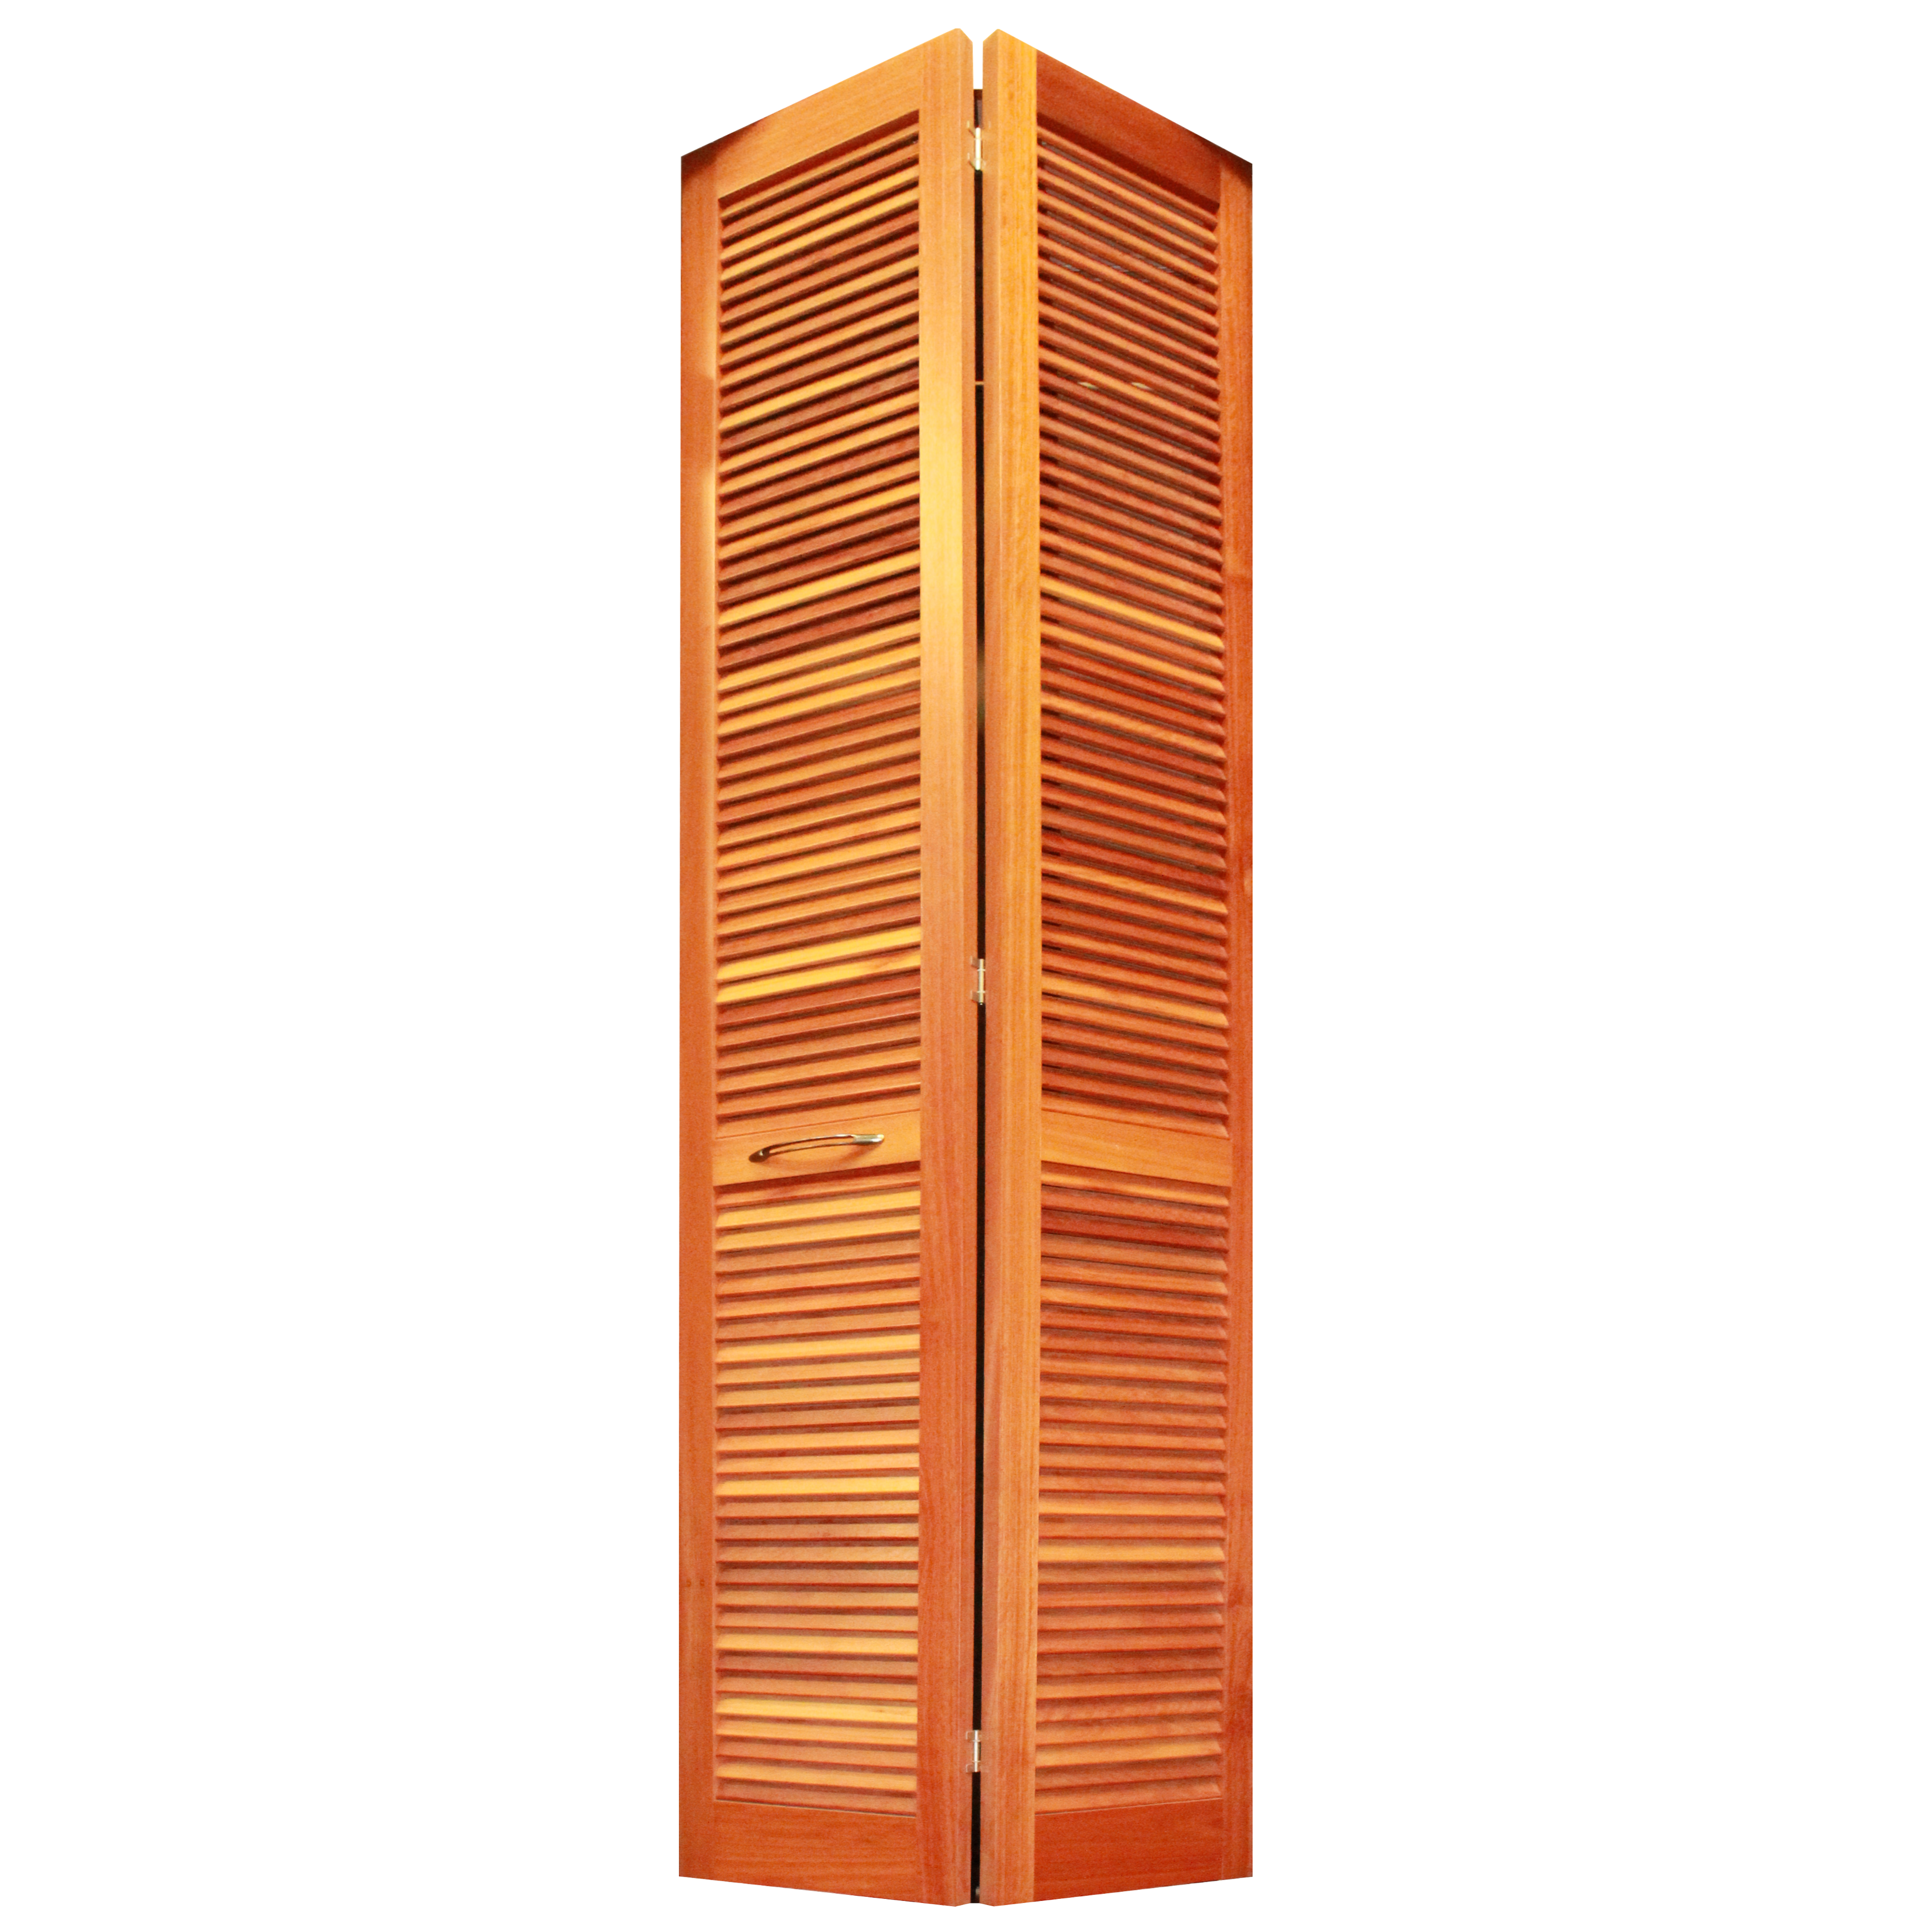 doors for closets with Bi Fold Doors Full Louver Closet Doors 1 18 Thickness on 2010 01 06 likewise 13483 Wardrobe Closet Furniture Made From Wood furthermore North Beach Plantation additionally 50 Cool Walk In Closet Design Ideas together with 20 Beautiful Glass Walk In Closet Designs.